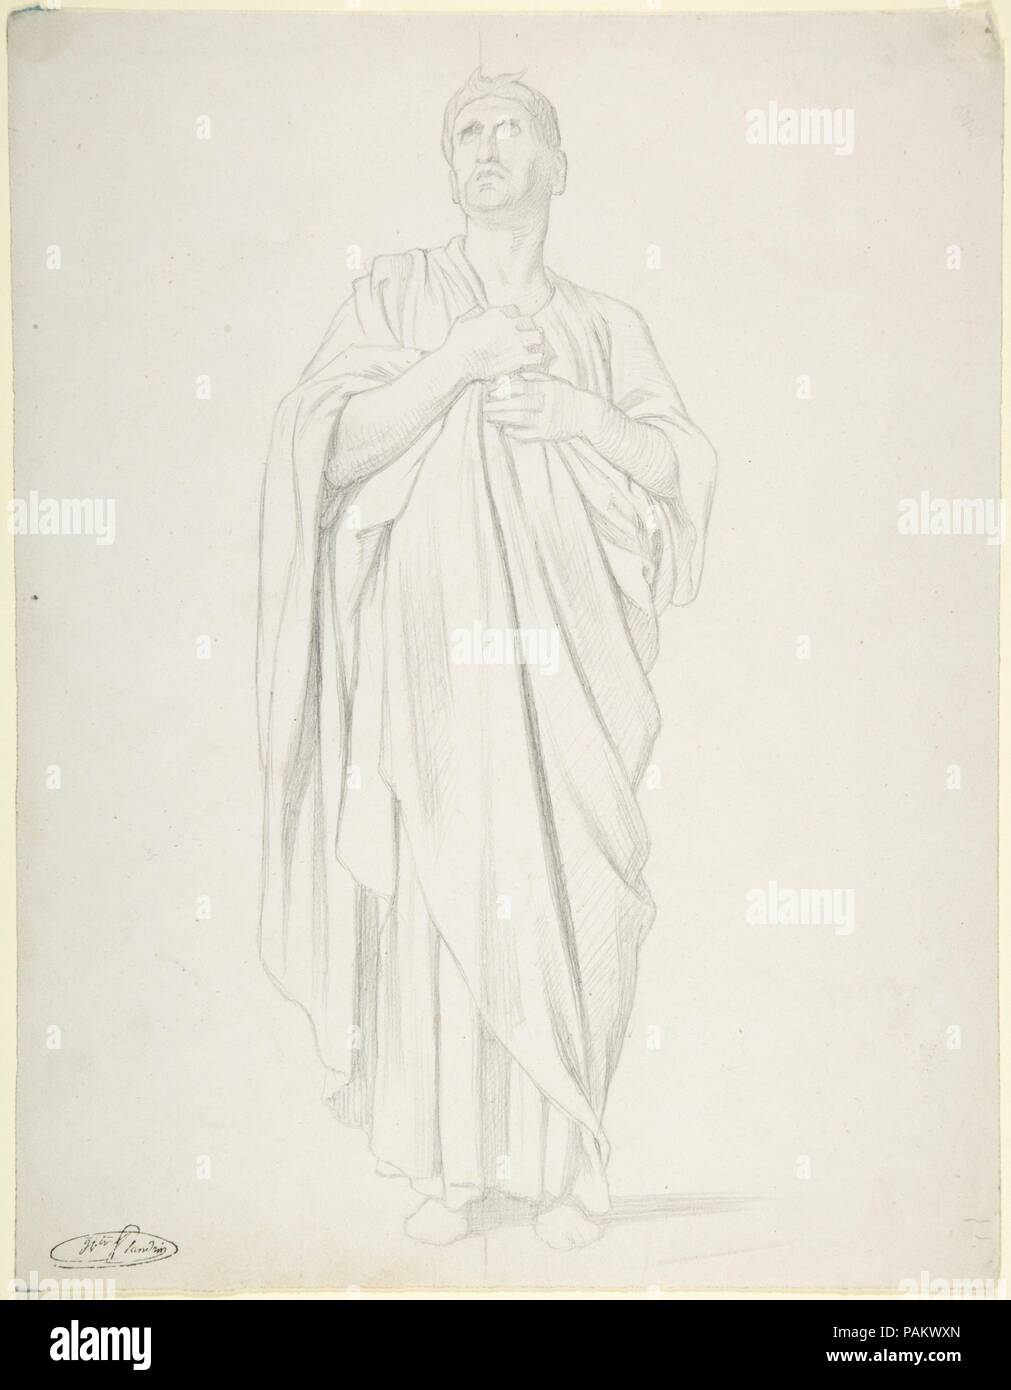 Study of an Apostle, for the painting of the Ascension in Saint-Germain-des-Pres, Paris (1839-1863). Dimensions: 11 1/16 x 8 9/16 in. (28.1 x 21.8cm). Draftsman: Hippolyte Flandrin (French, Lyons 1809-1864 Rome). Date: 1822-64. Museum: Metropolitan Museum of Art, New York, USA. - Stock Image